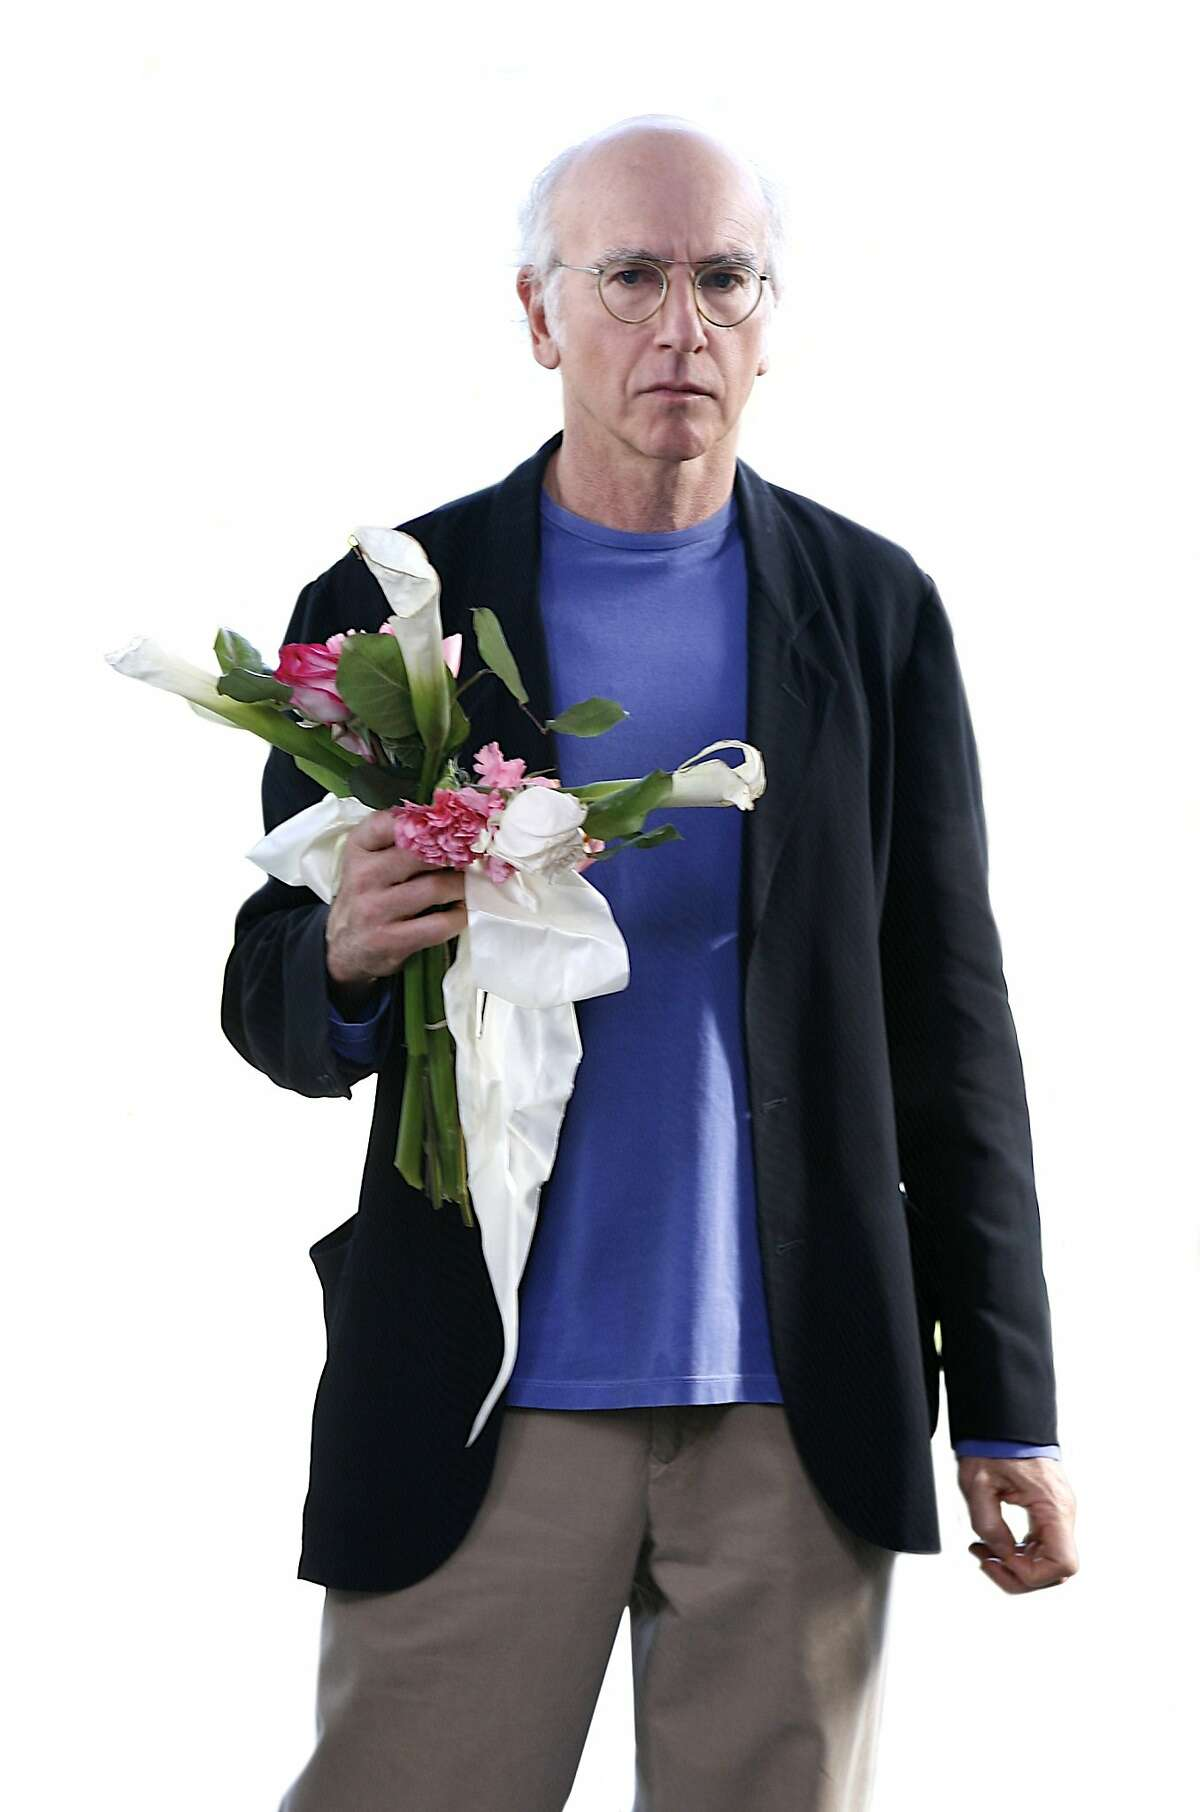 If Seinfeld is the poster child for normcore, Larry David is the godfather.